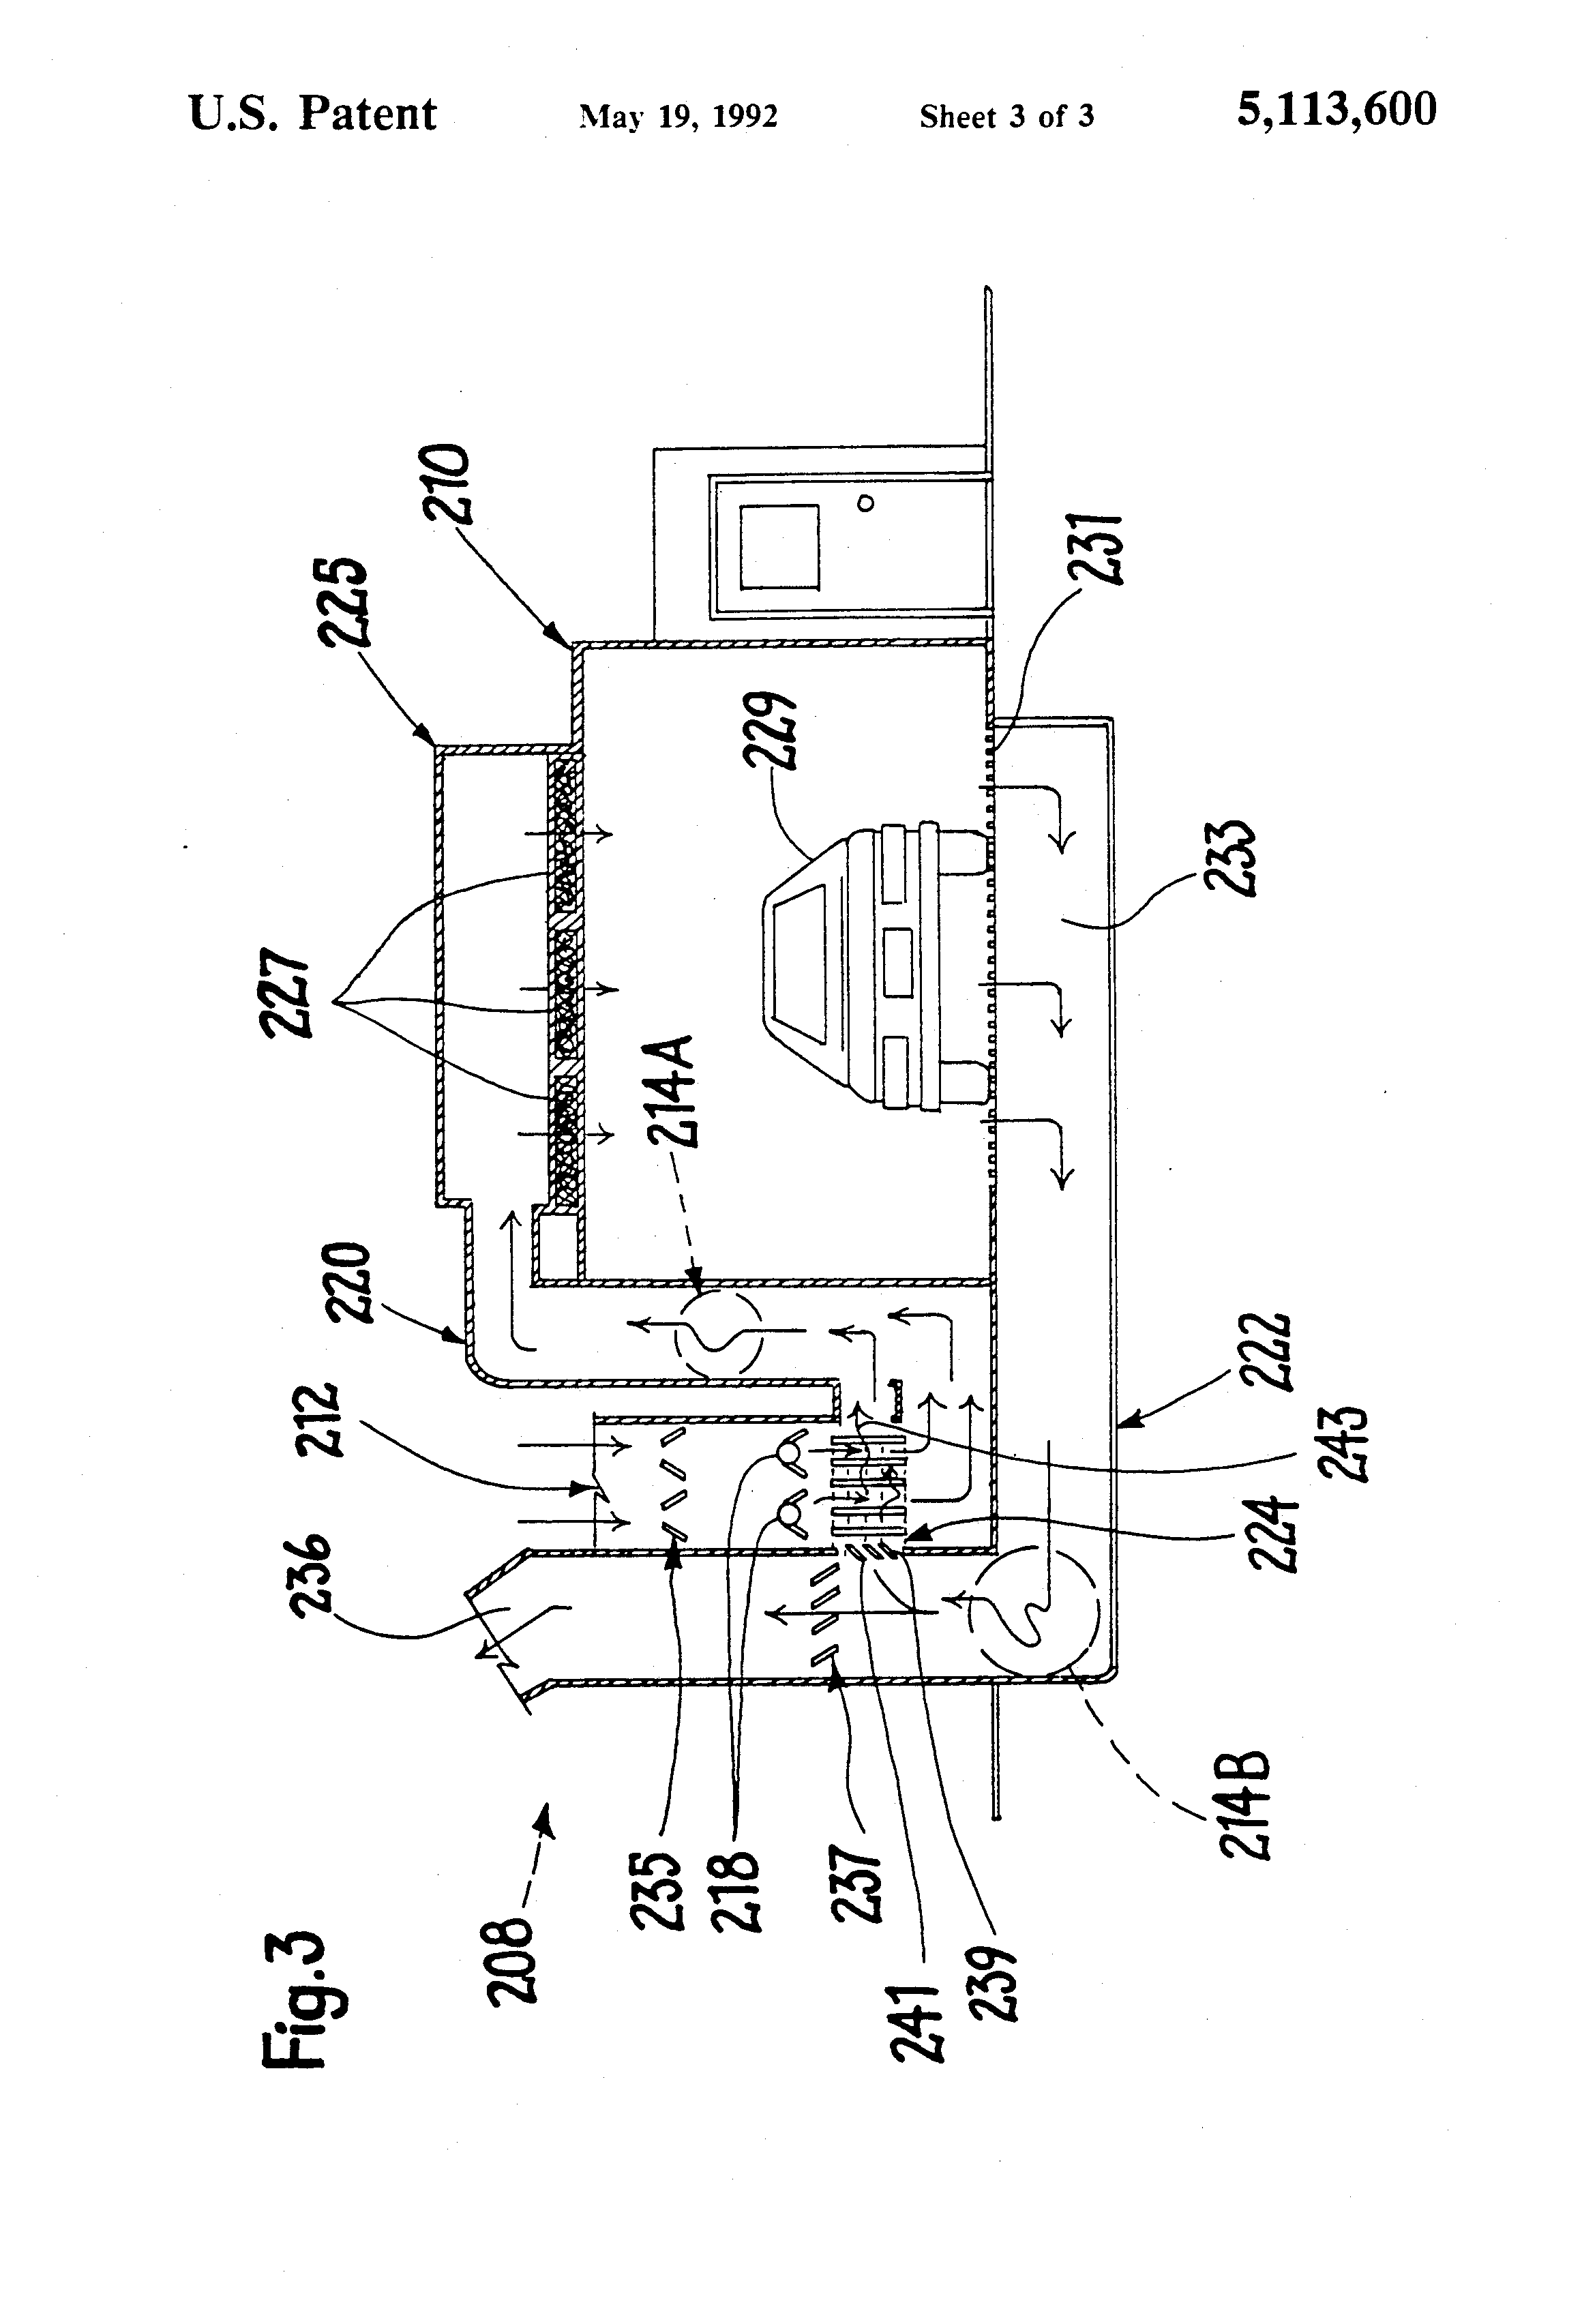 patent us5113600 - combination paint spray booth-drying oven with single air fan